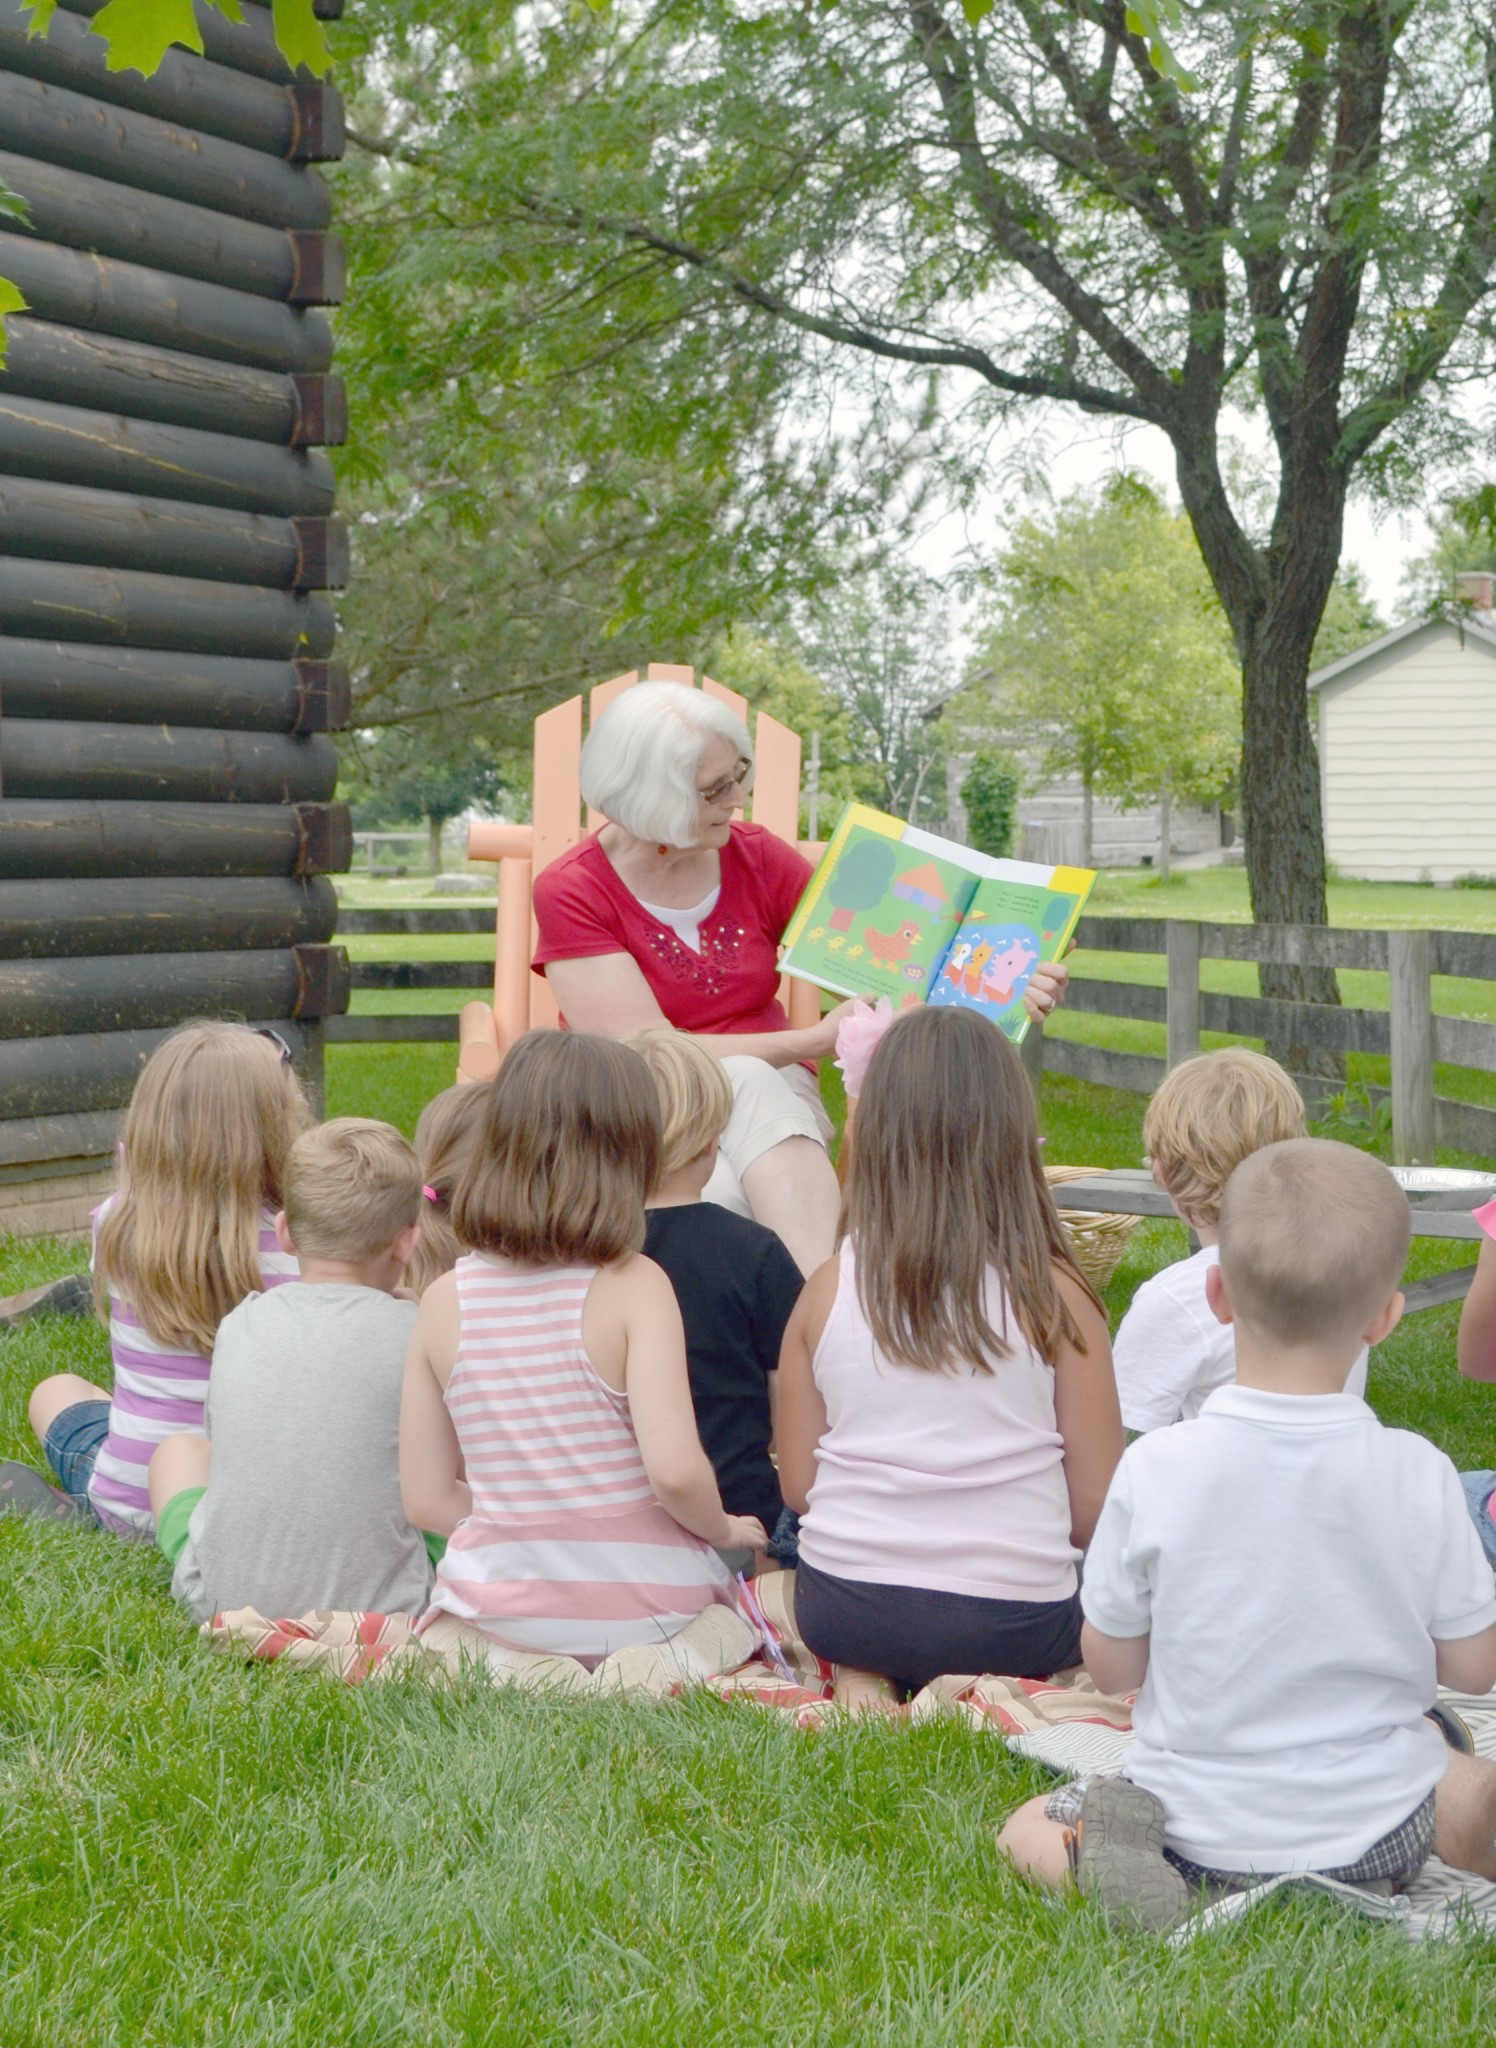 Spring on the Farm at Sauder Village offers families a unique opportunity to enjoy some favorite stories, try hands-on activities and watch unique demonstrations. (Submitted photo)